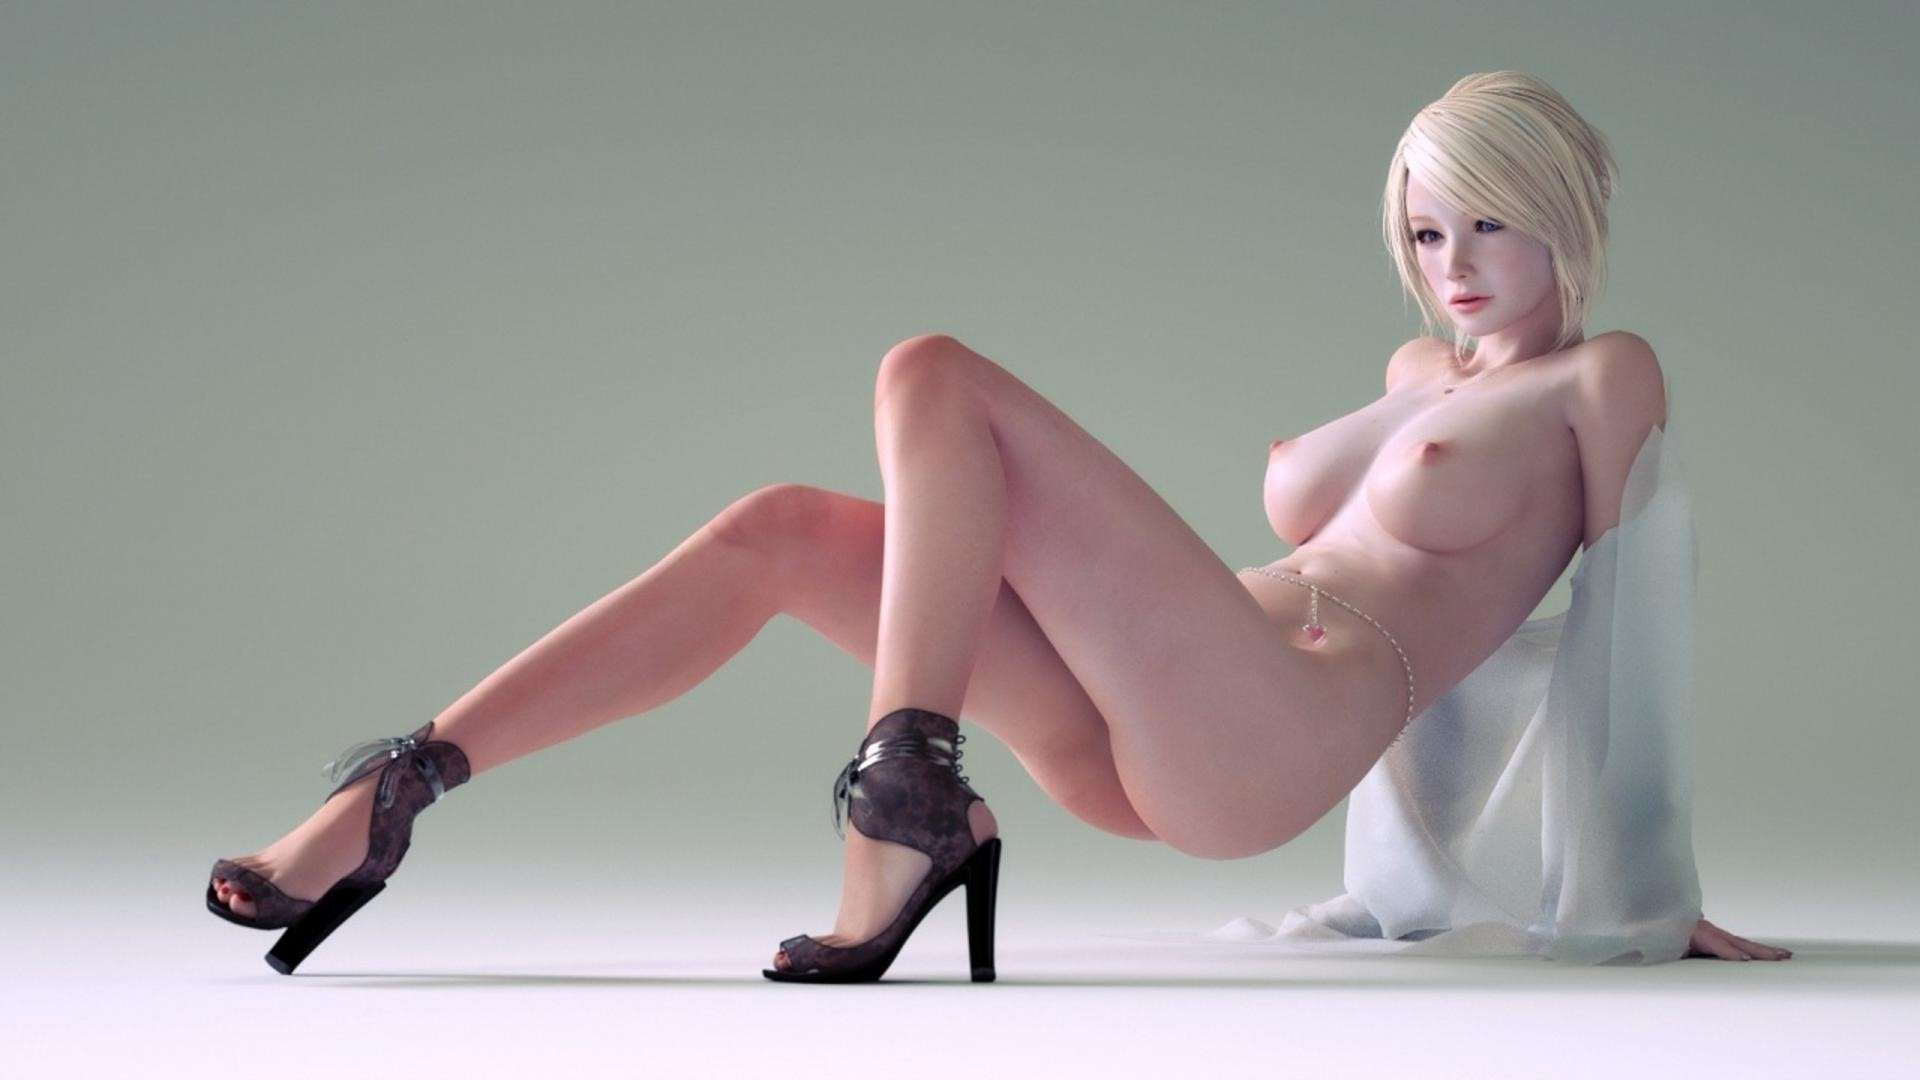 Hentai 3d wallpaper 3D Blonde Girl Wallpaper